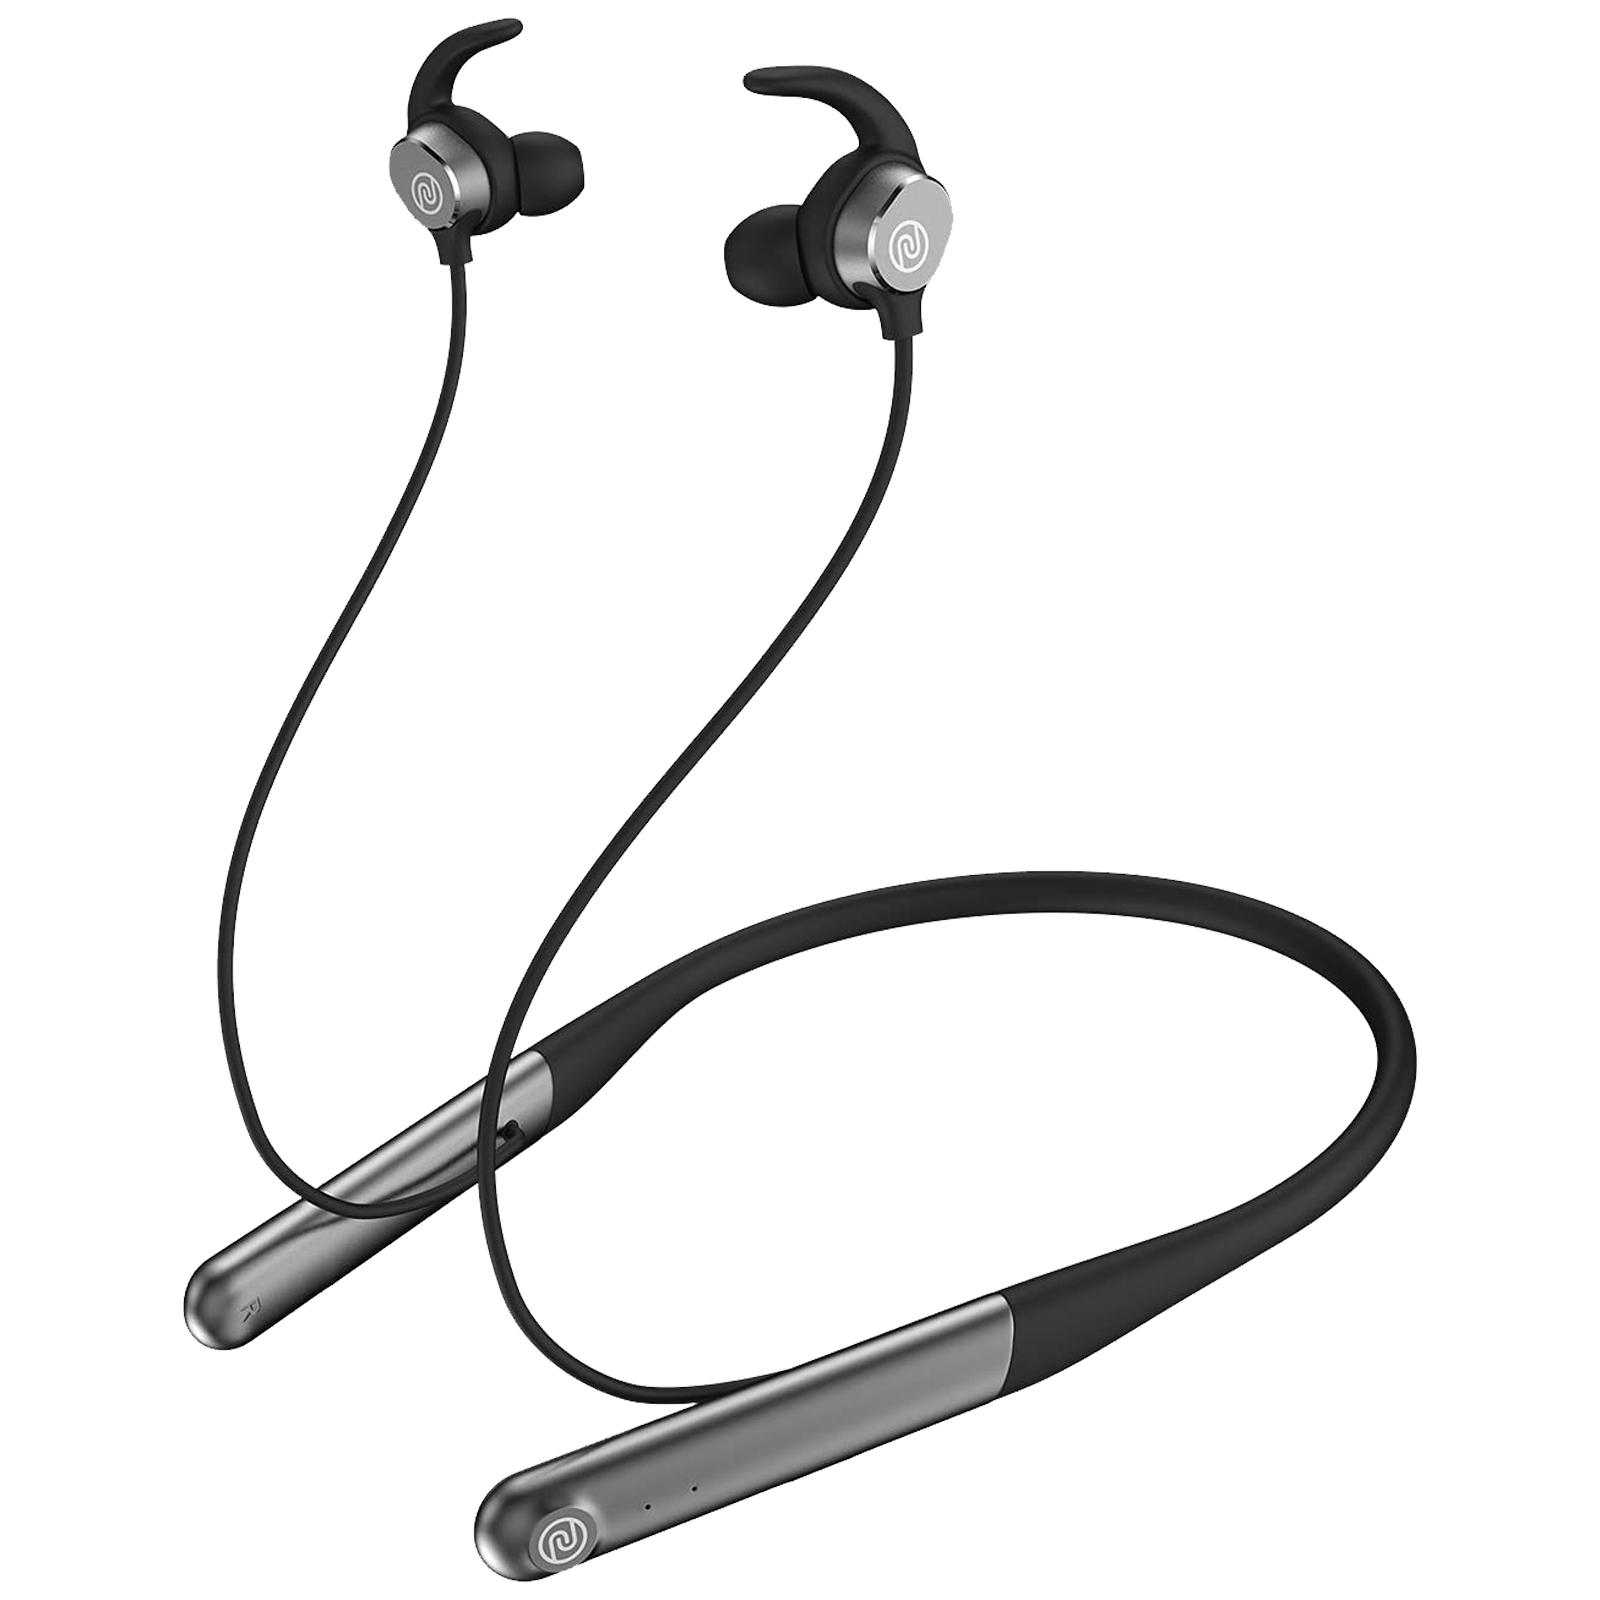 Noise Flair In-Ear Active Noise Cancellation Wireless Earphone with Mic (Bluetooth 5.0, Fast Charge Technology, Carbon Black)_1